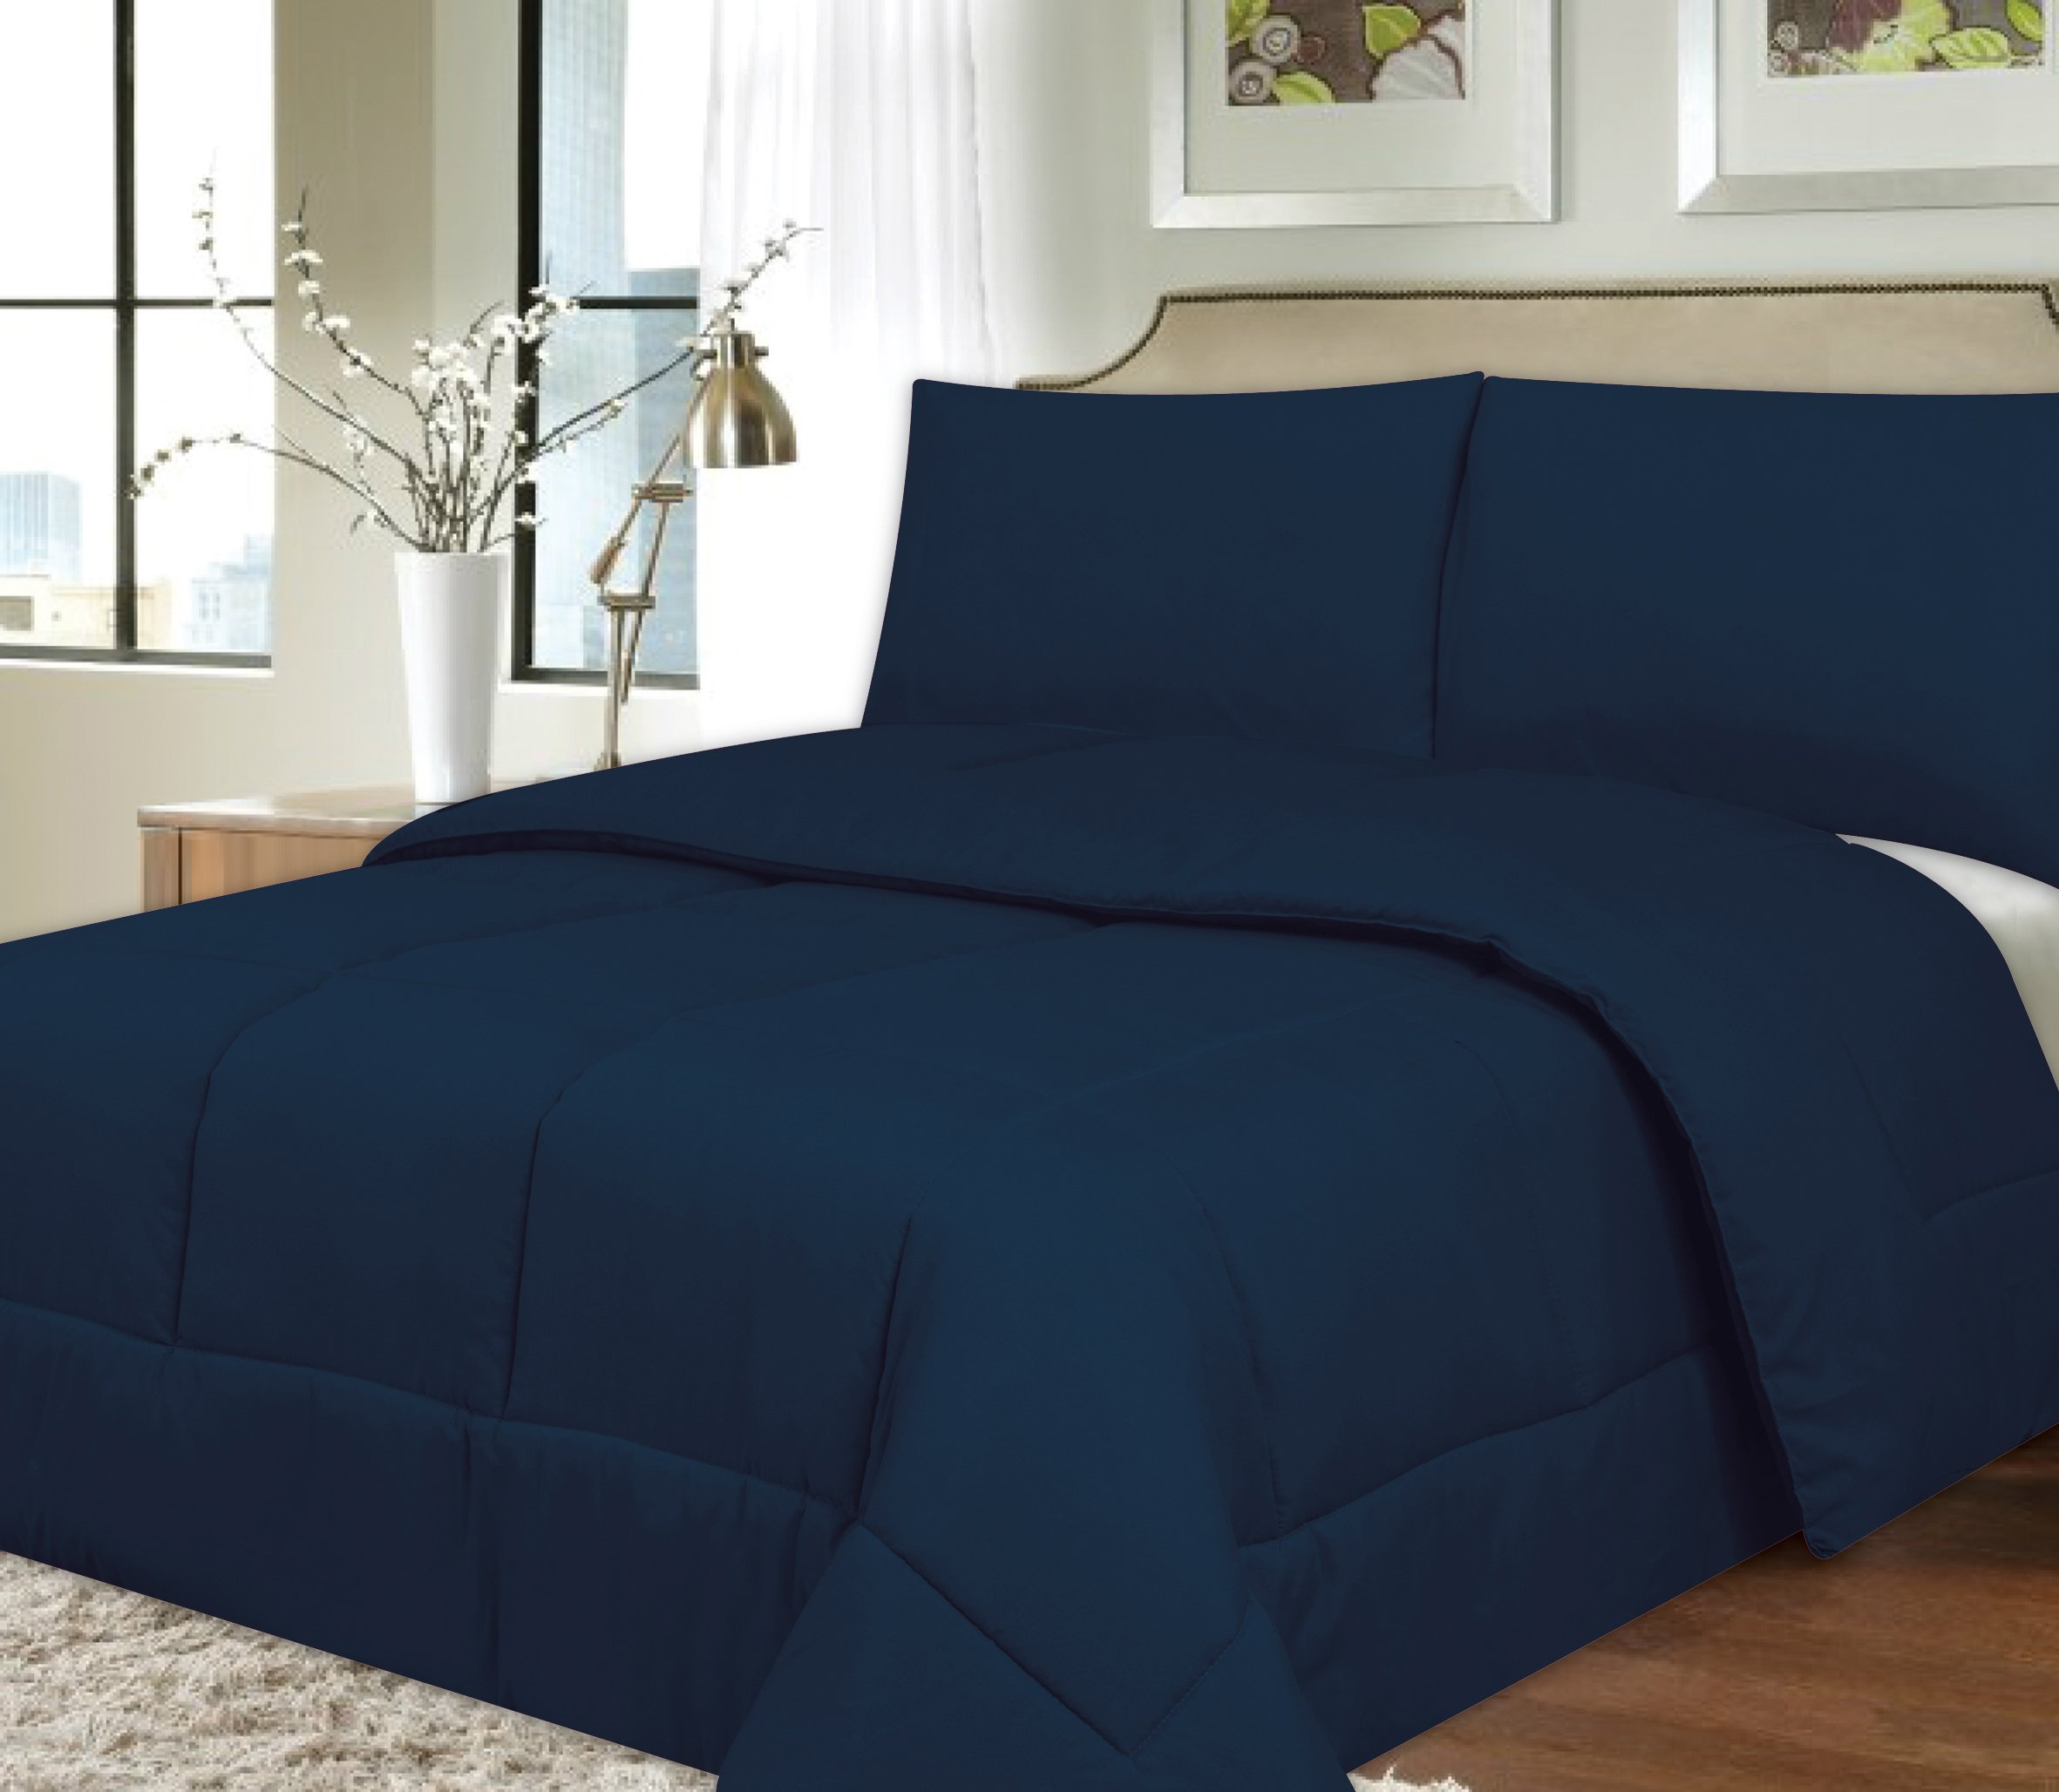 Sweet Home Collection Down Alternative Polyester Comforter Box Stitch Microfiber Bedding - Full, Navy